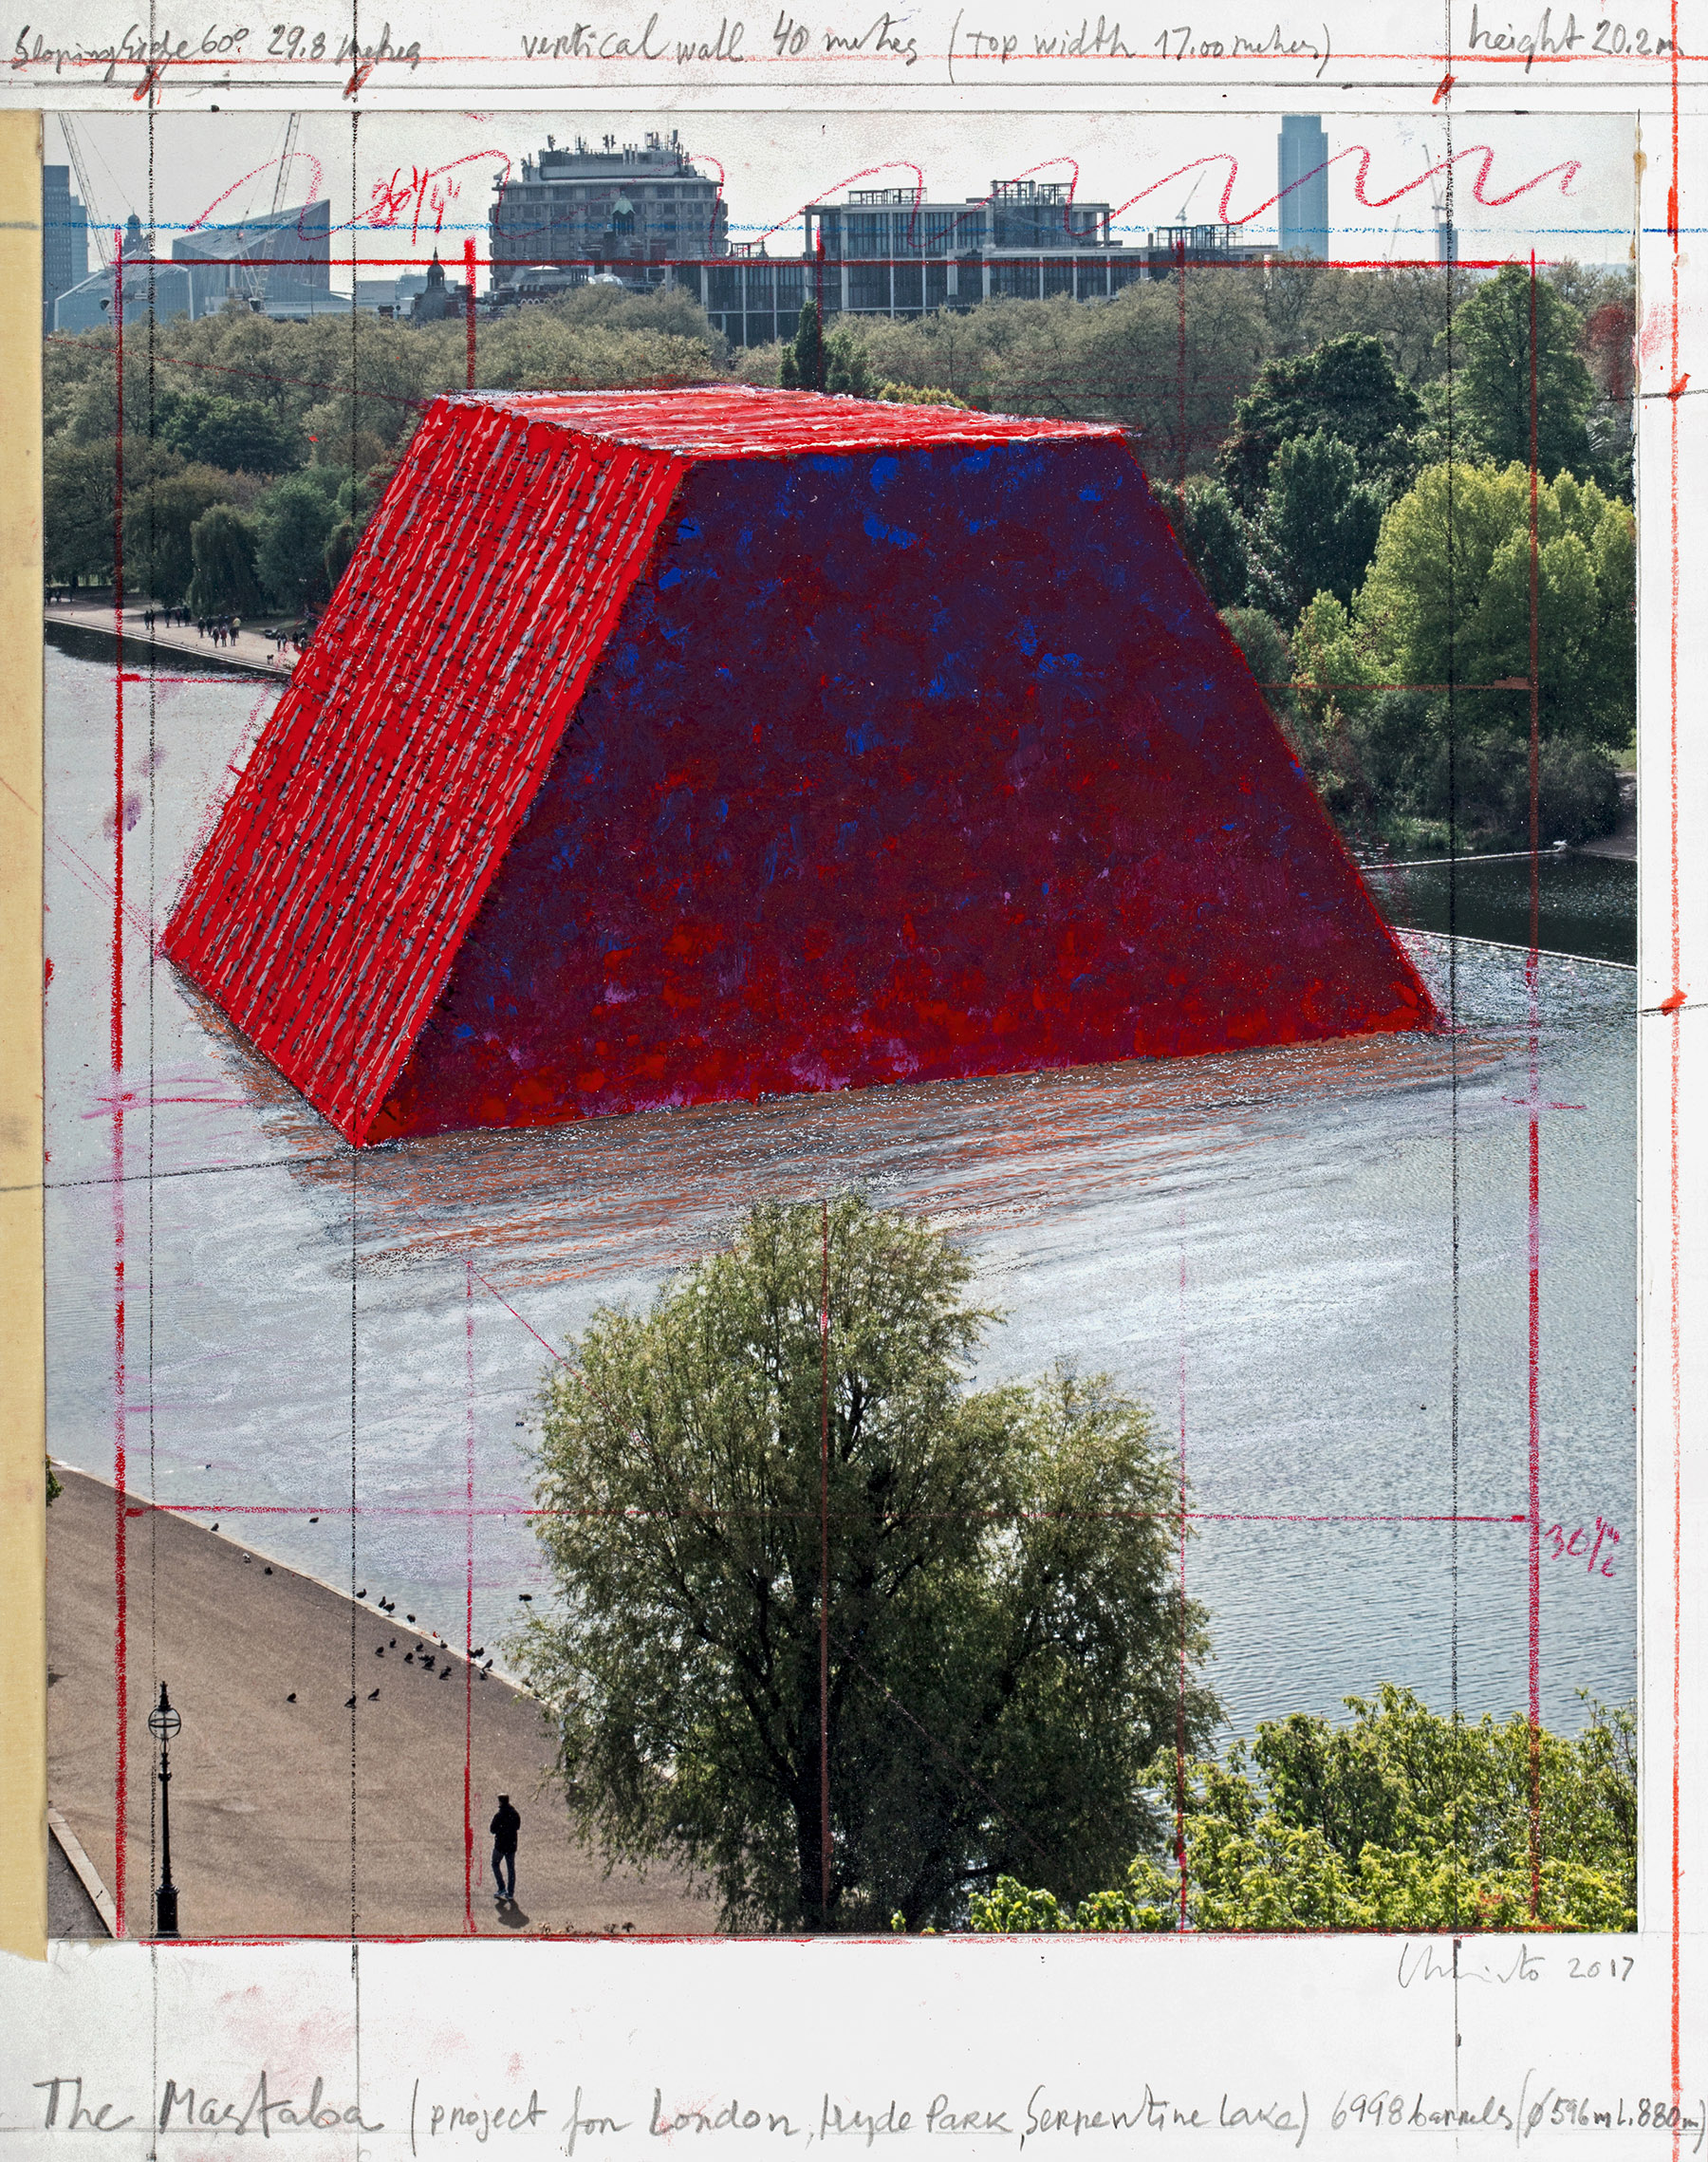 The Mastaba (Project for London, Hyde Park, Serpentine Lake), Collage 2017, photo: André Grossmann, © 2017 Christo